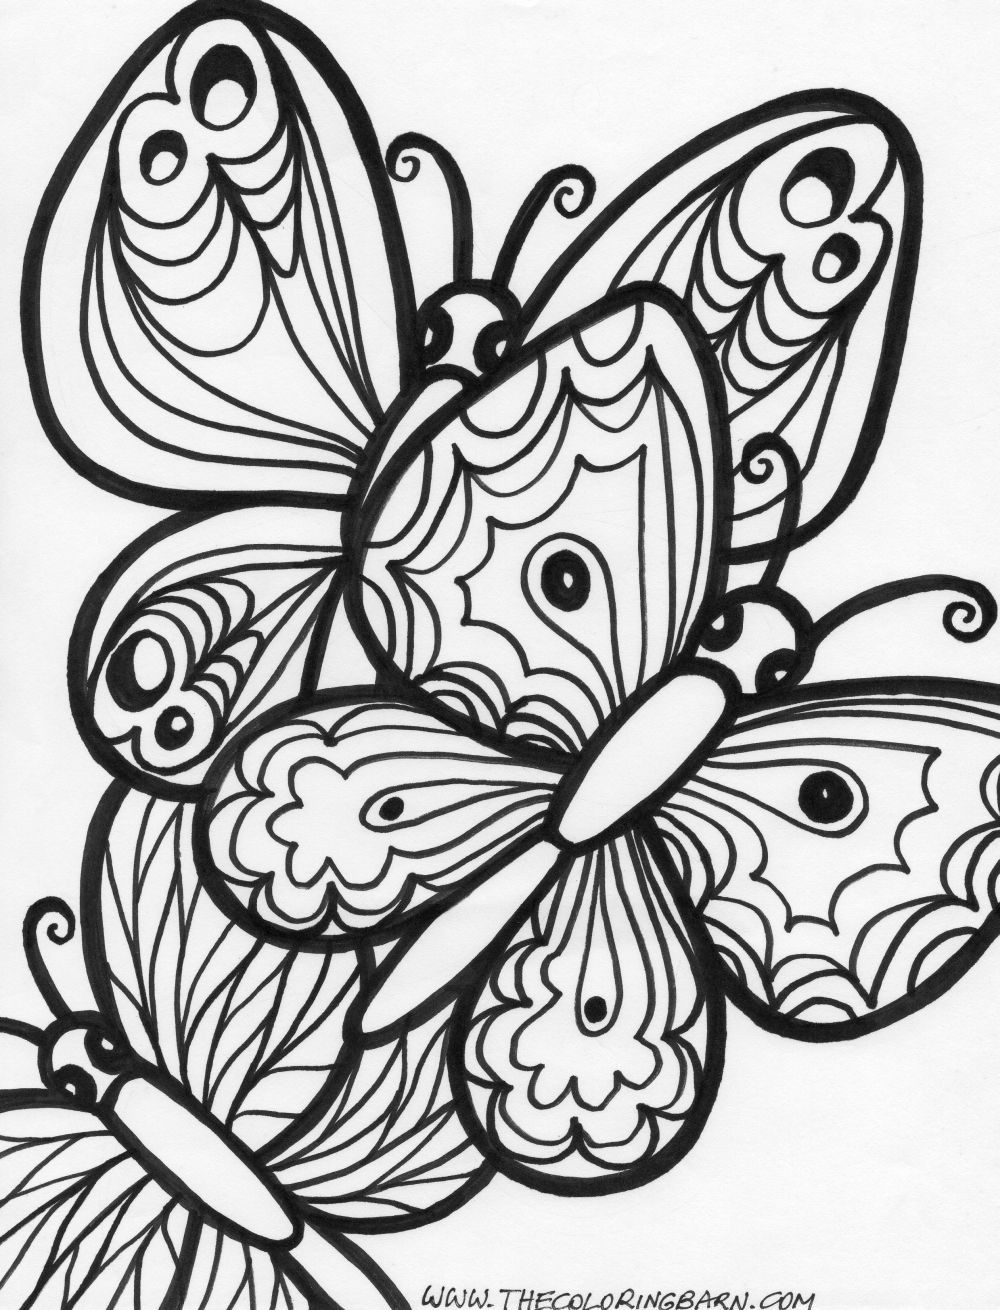 Nearly 1000 Hand-Drawn Coloring Pages | Coloring & Drawing ...